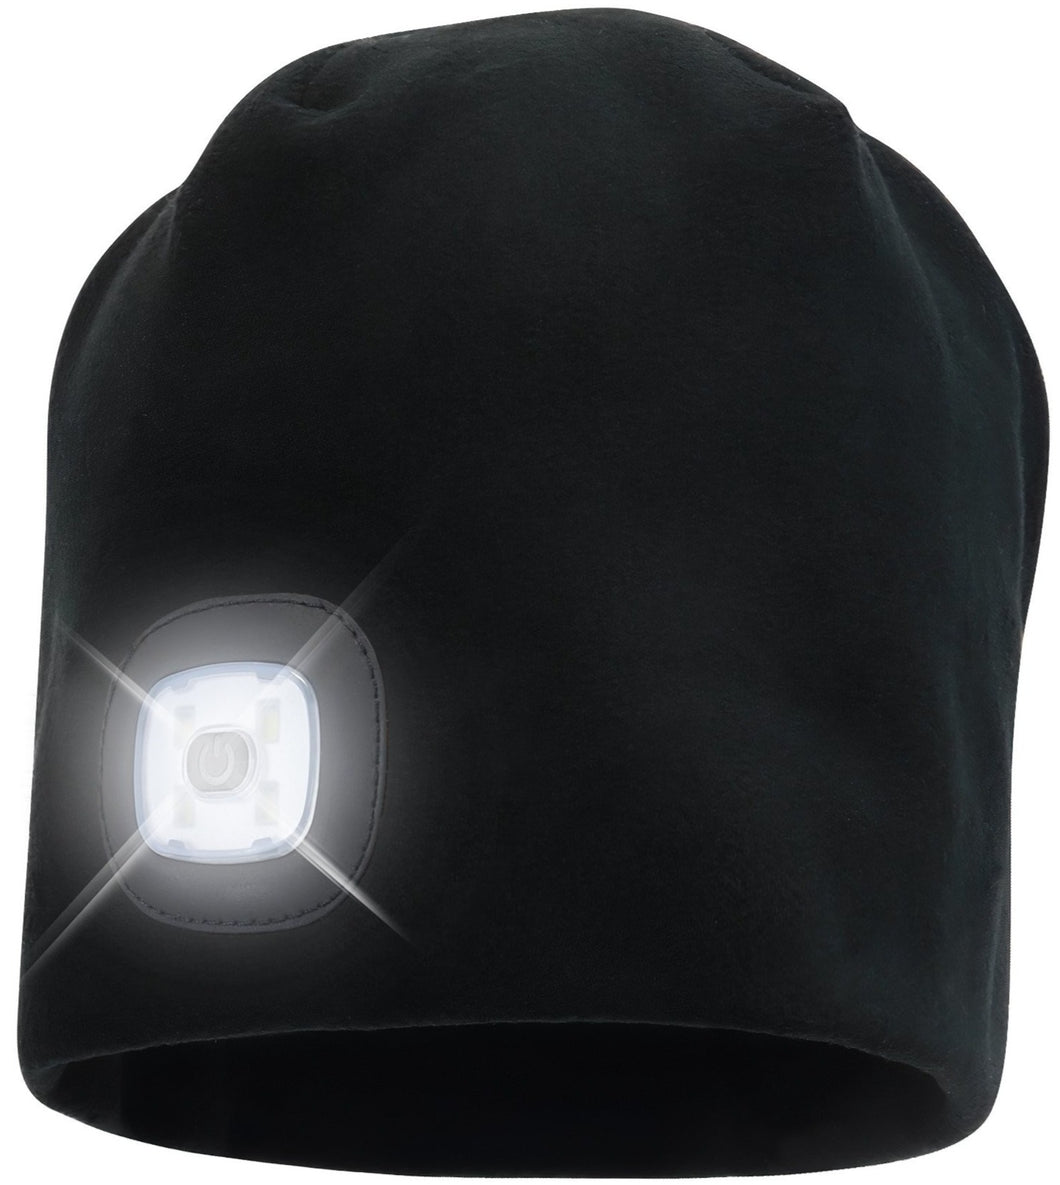 Headlightz® Beanie - Fleece - Black